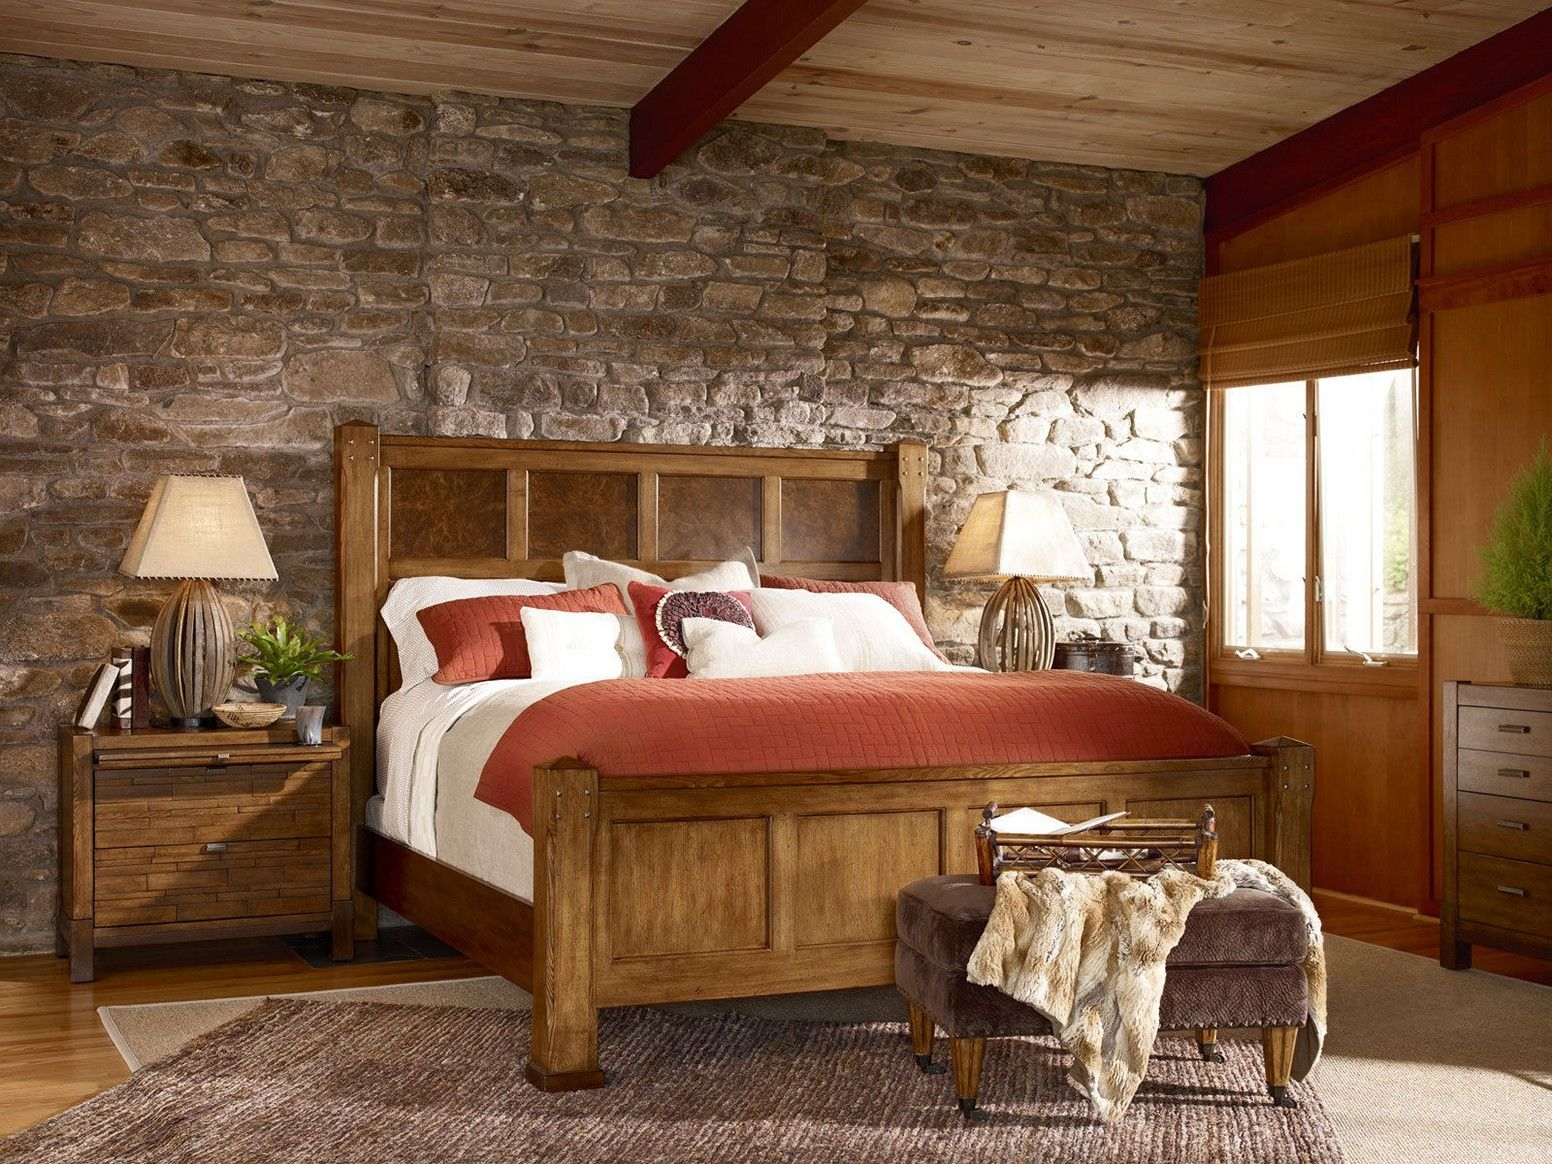 Rustic Country Bedroom Decorating Ideas